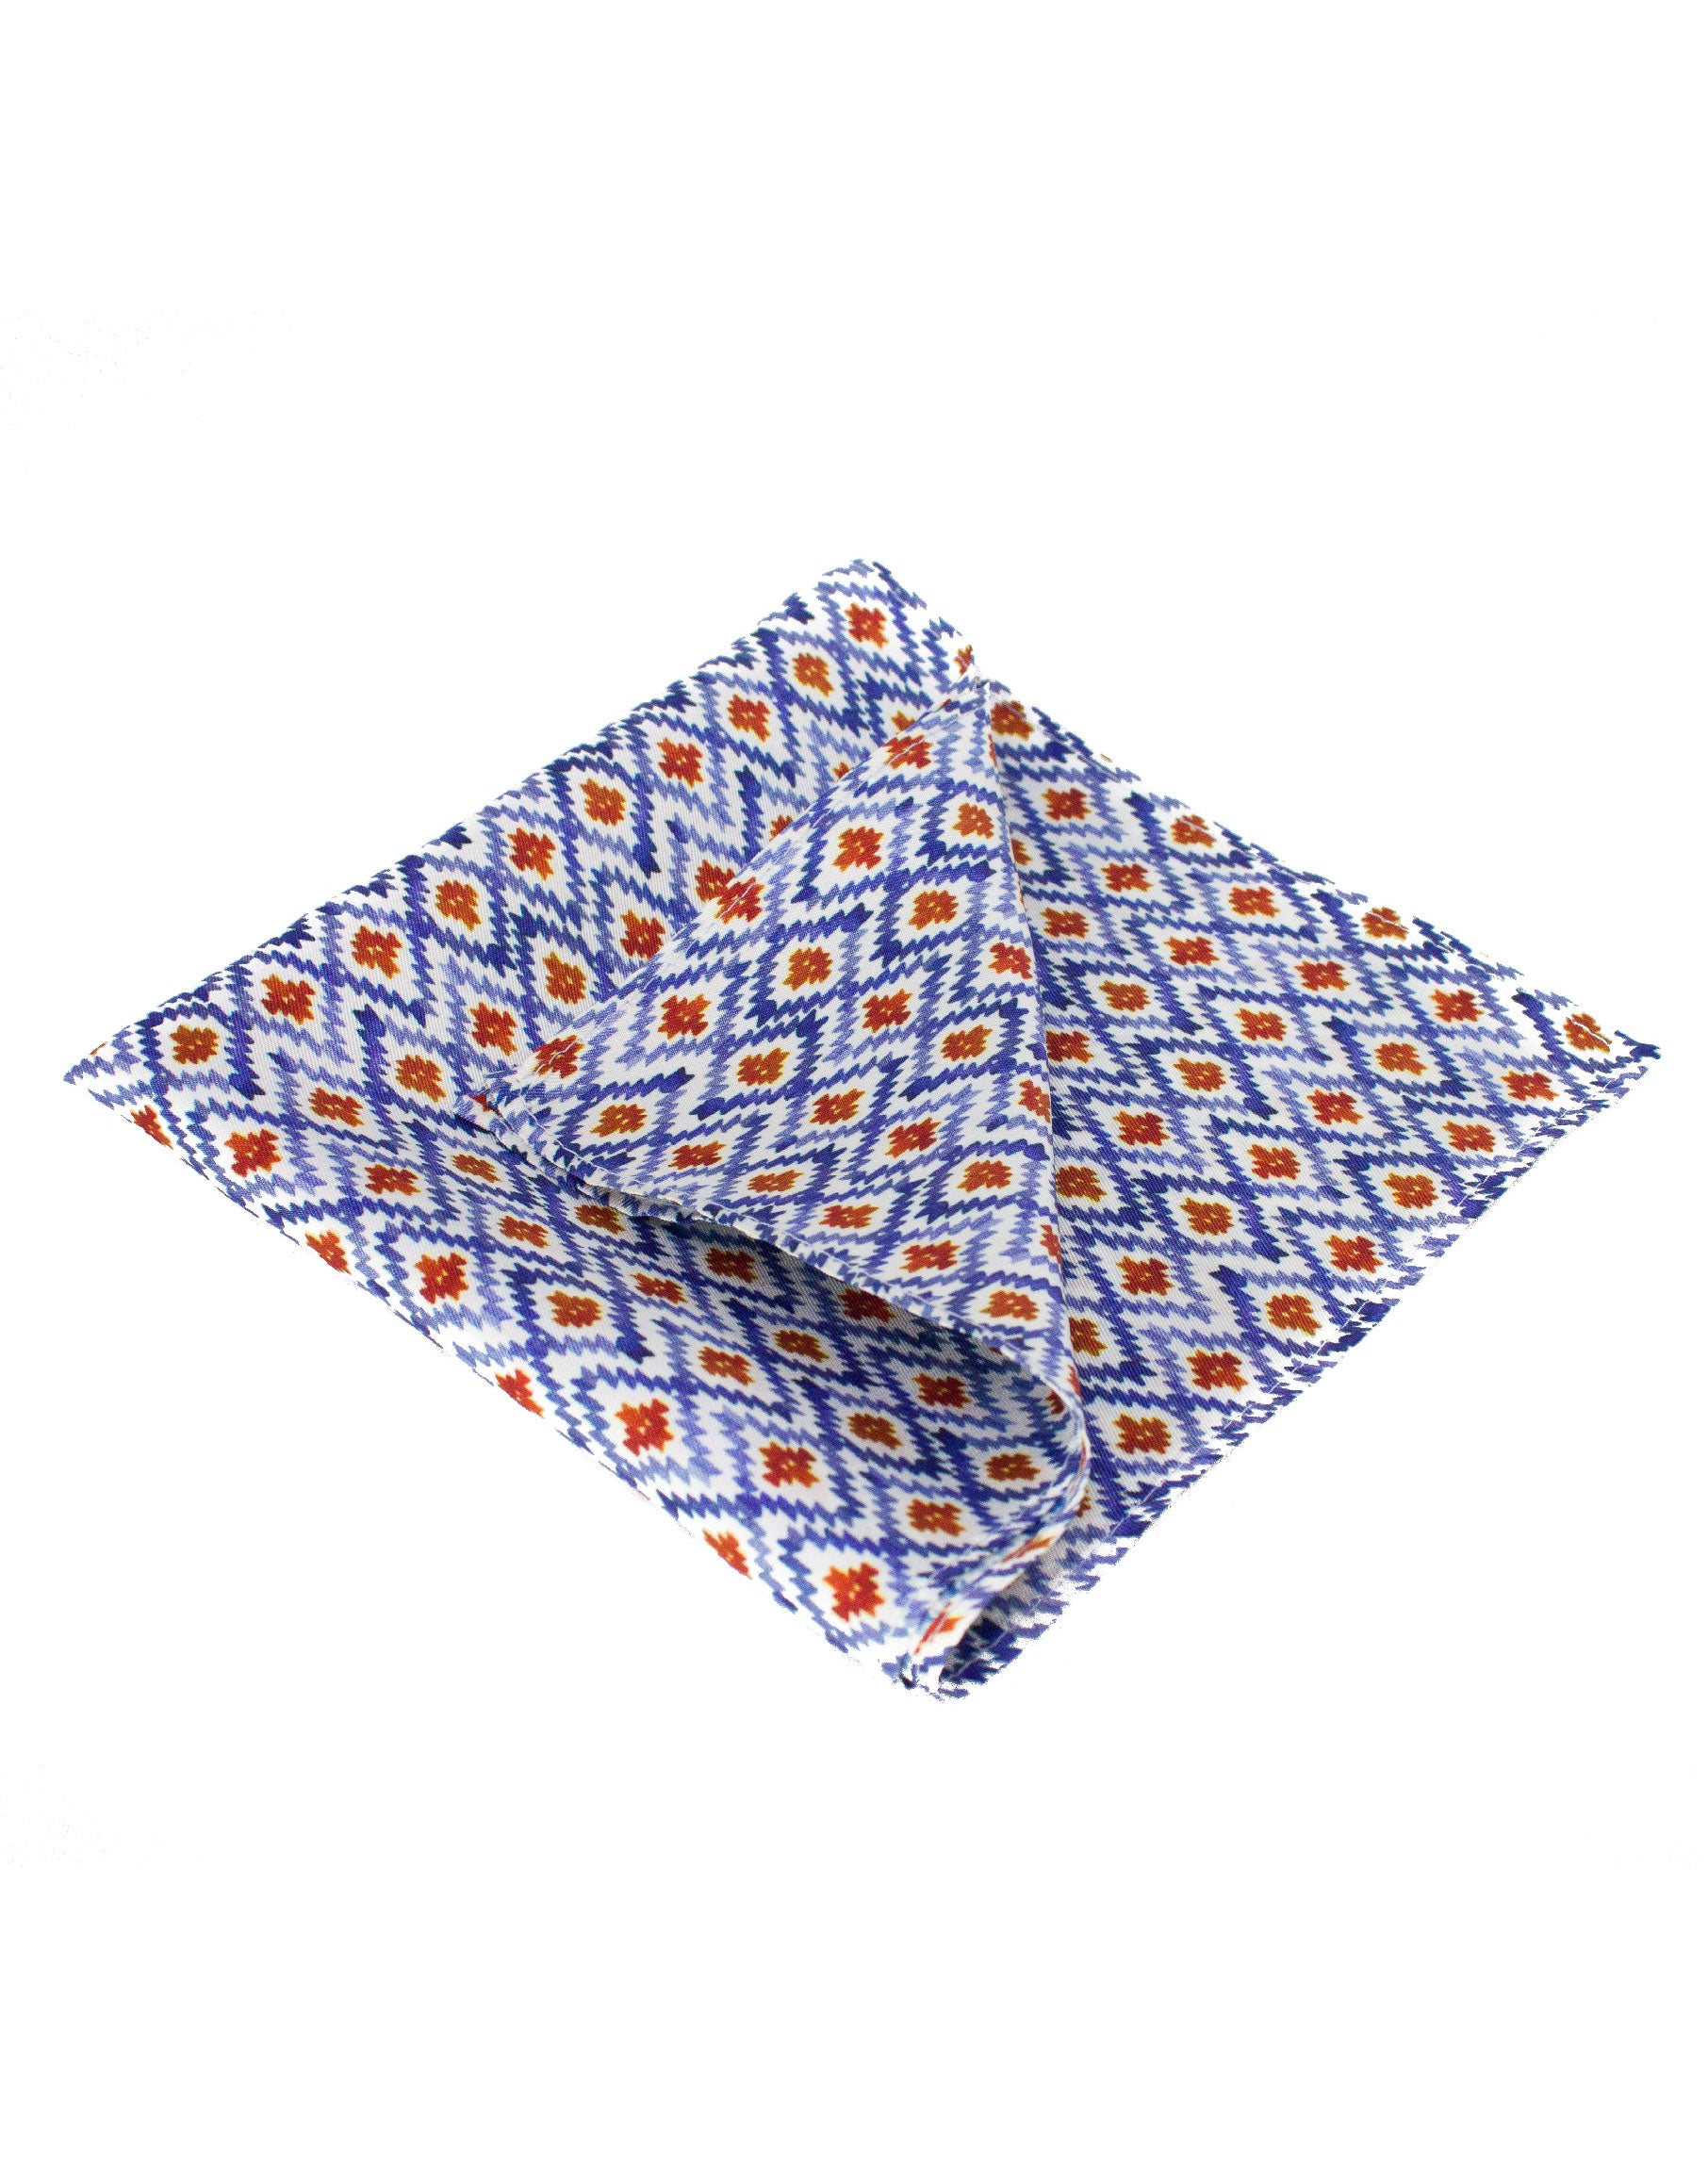 Fashionable men's silk pocket square